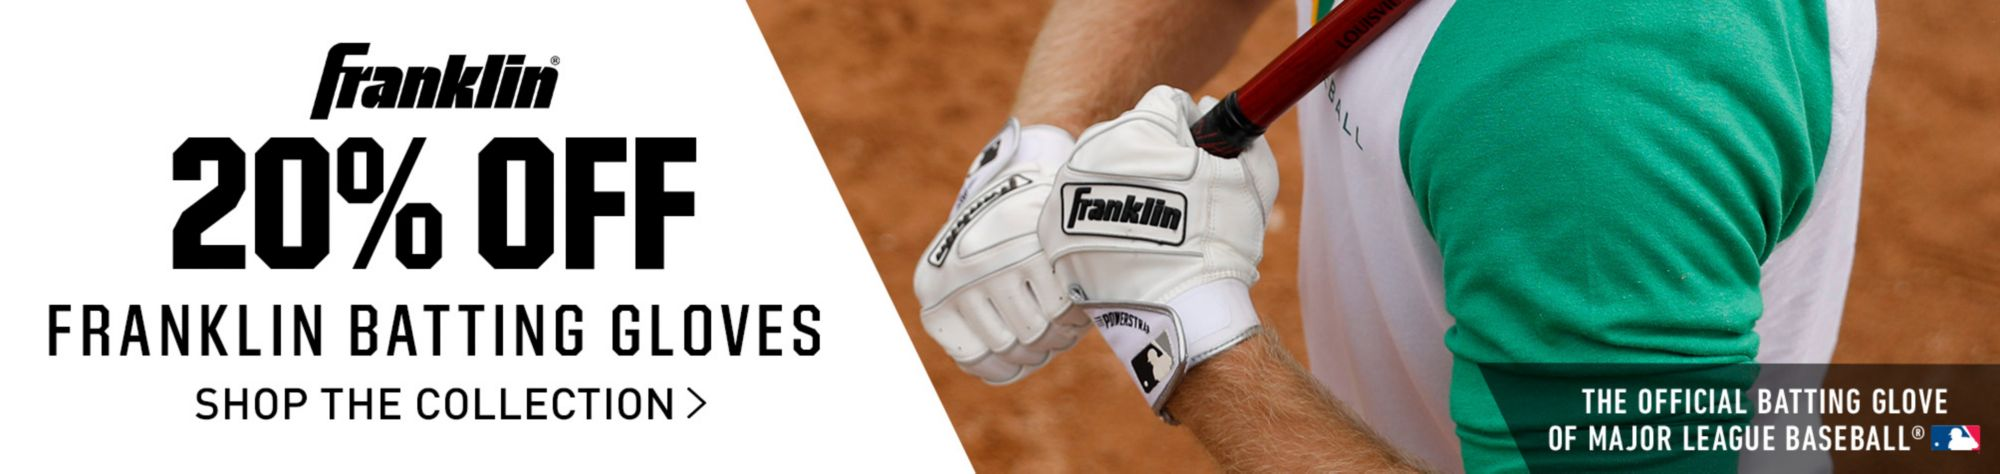 20% Off Franklin Batting Gloves - Shop The Collection